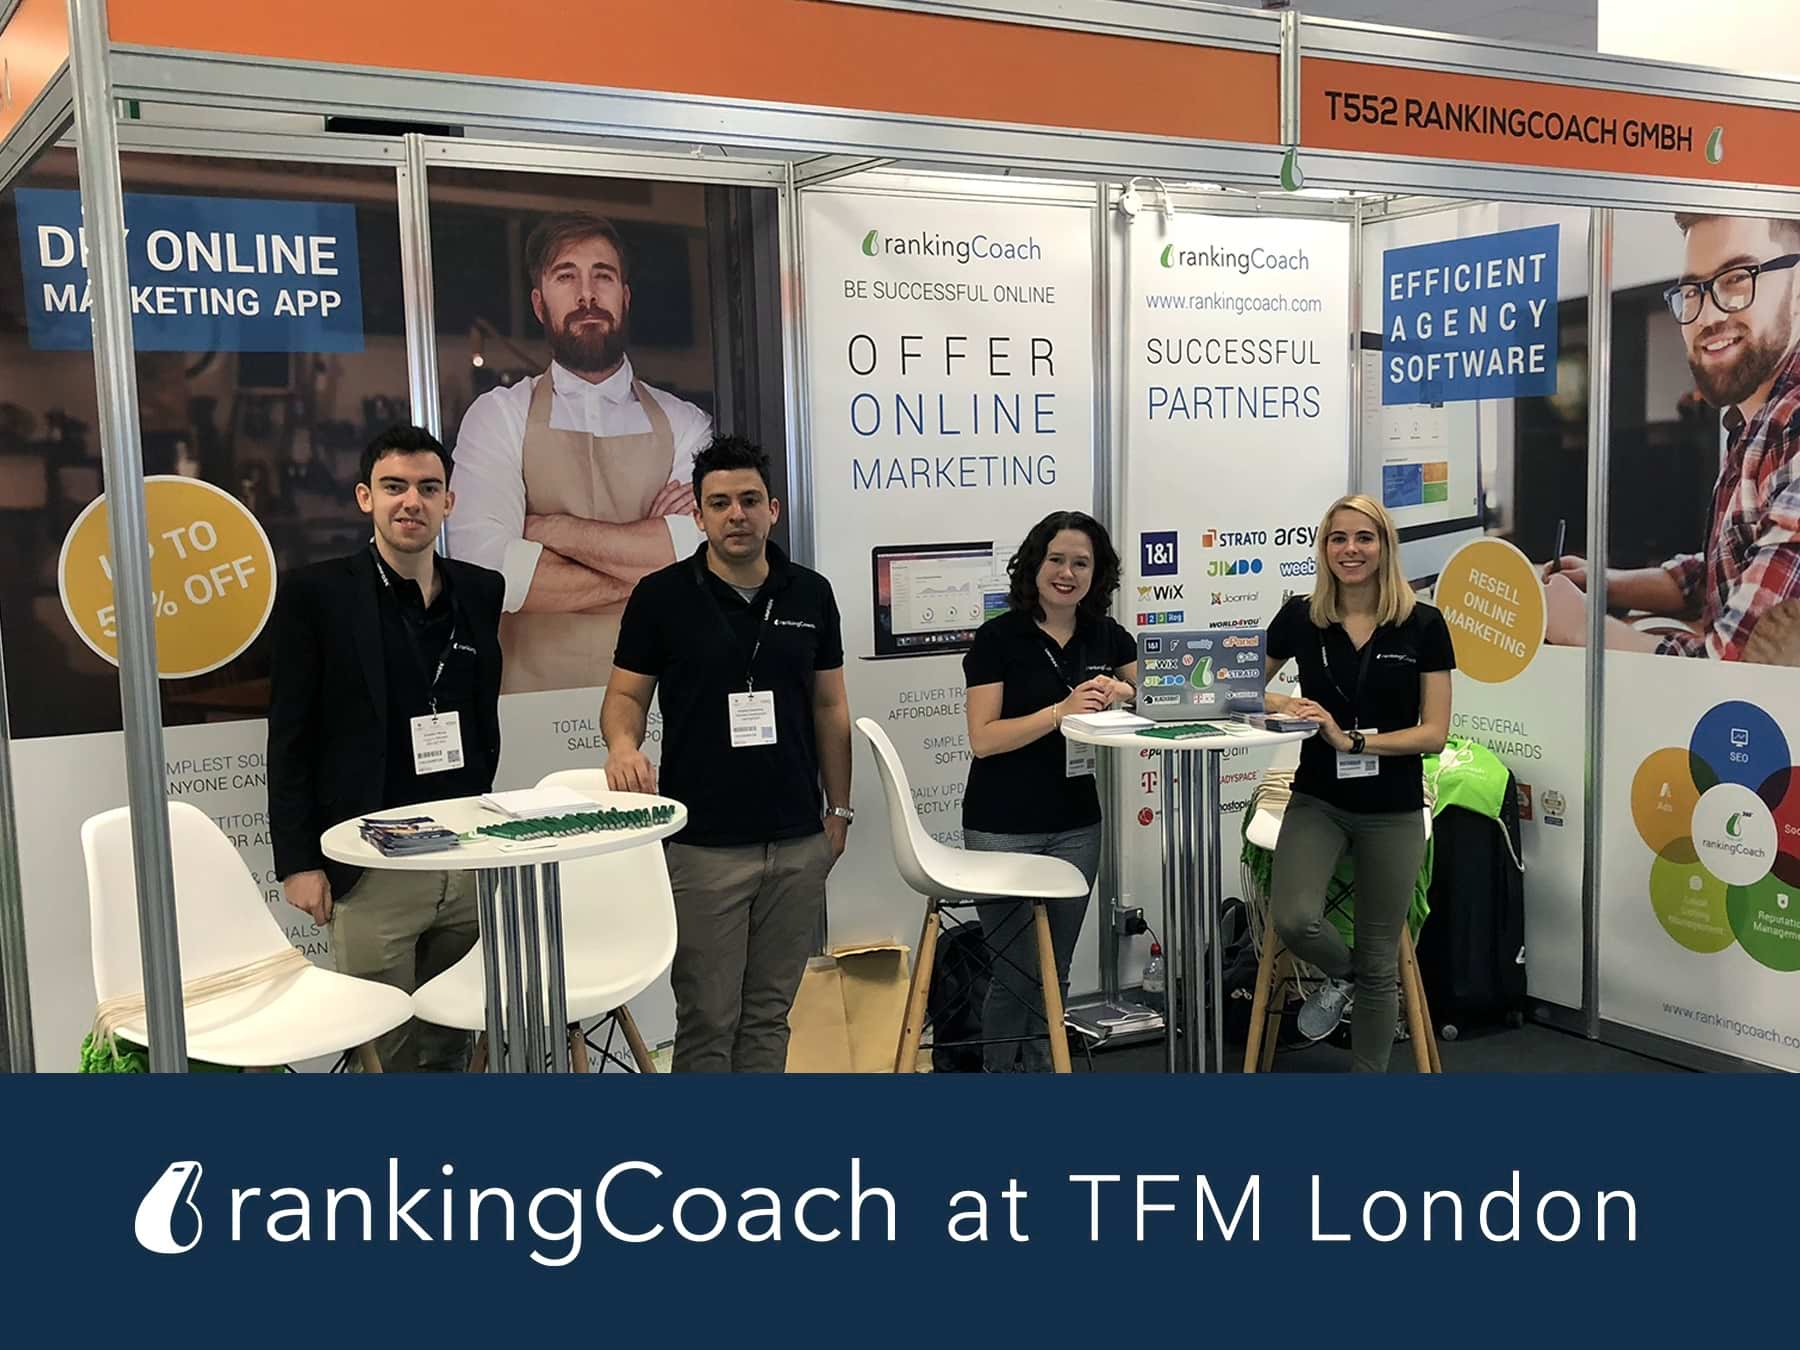 rankingCoach Takes on Technology for Marketing